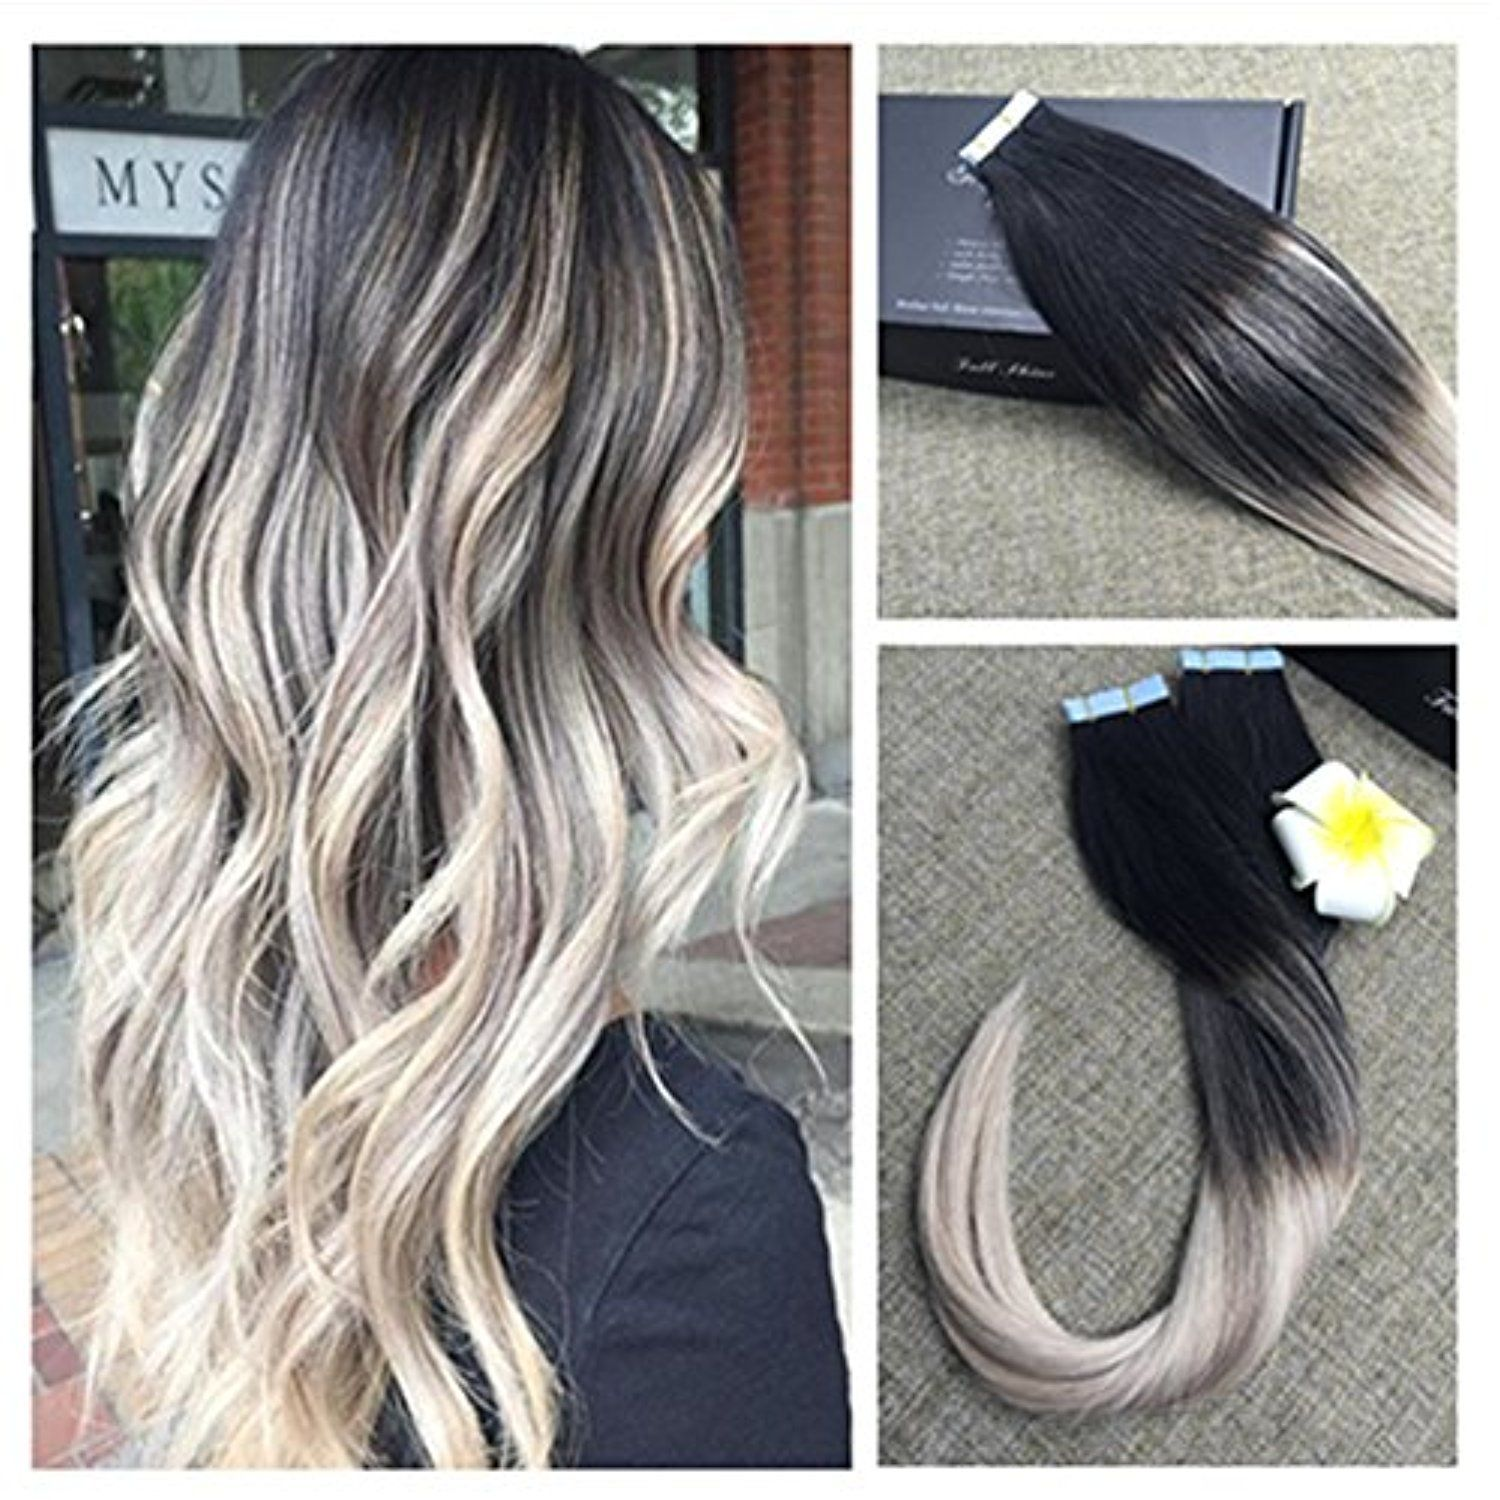 Full Shine 22 Inch Human Hair Tape Ombre Extensions 20 Pcs 50gram